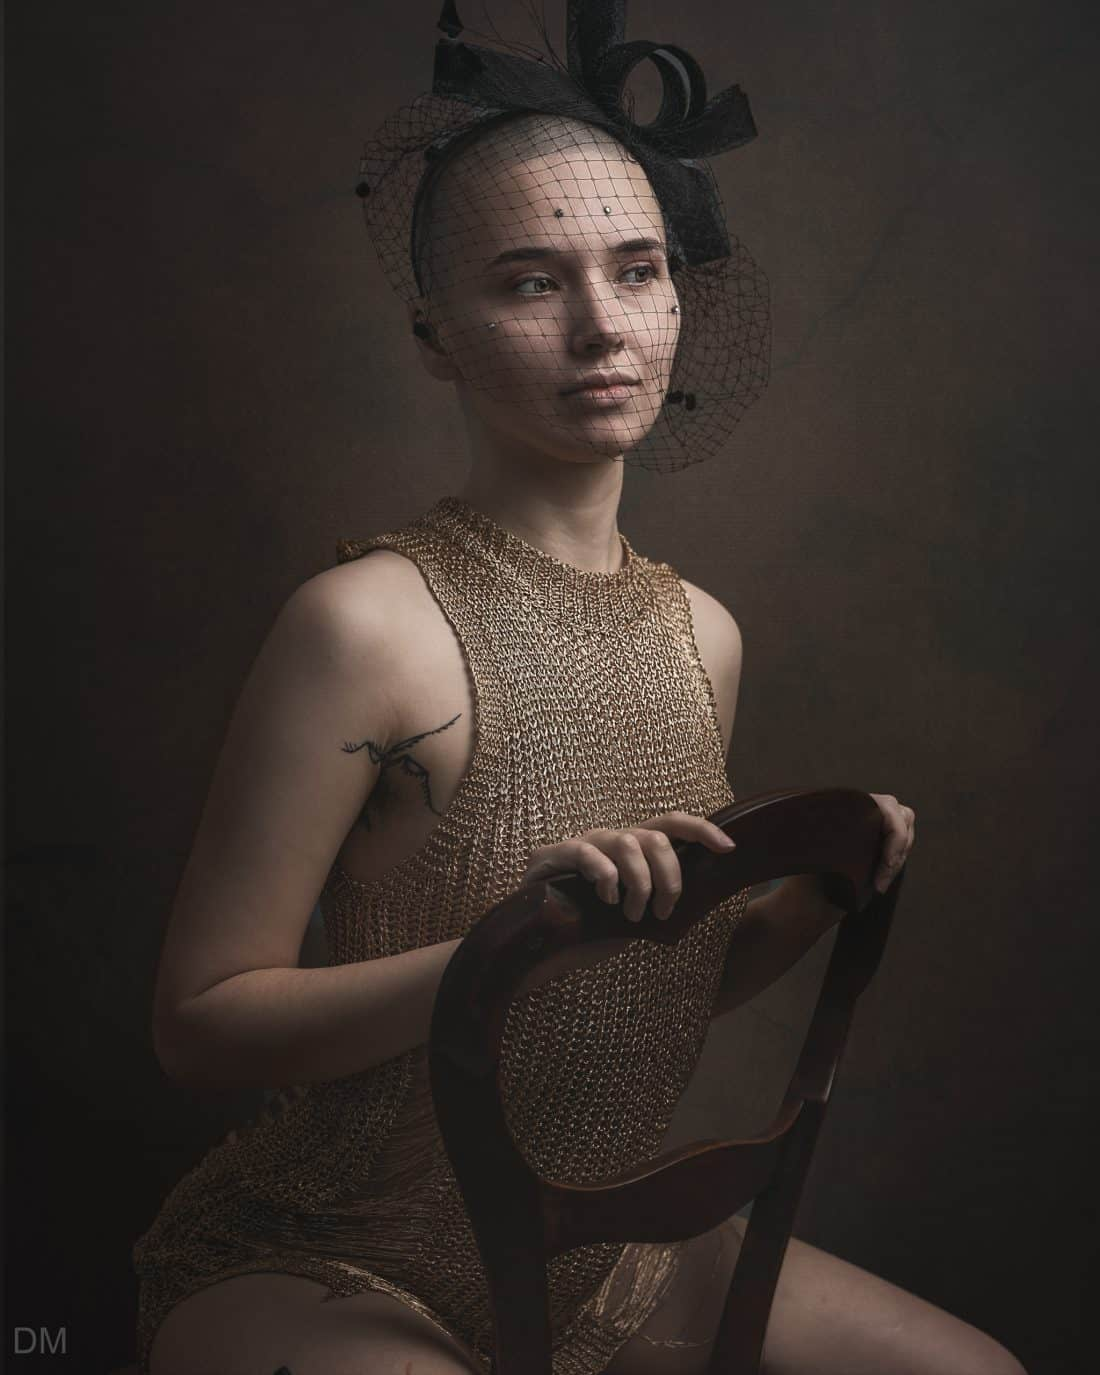 Androgunous female model sitting on a chair in a gold dress